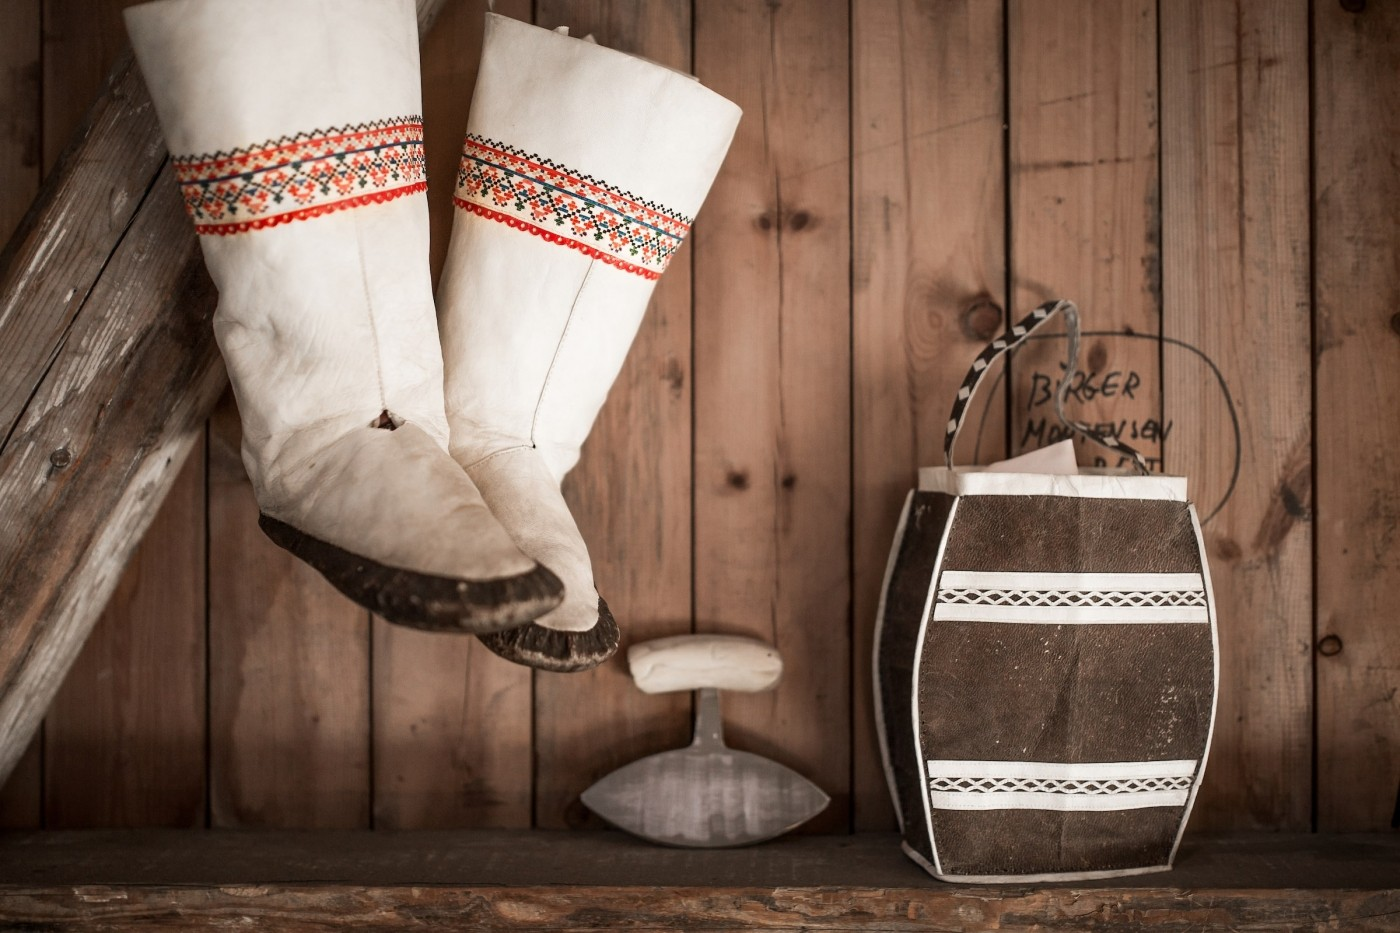 Kamiks and souvenirs at the Hotel Narsaq shop on the old harbour in Narsaq in South Greenland. Photo by Mads Pihl - Visit Greenland